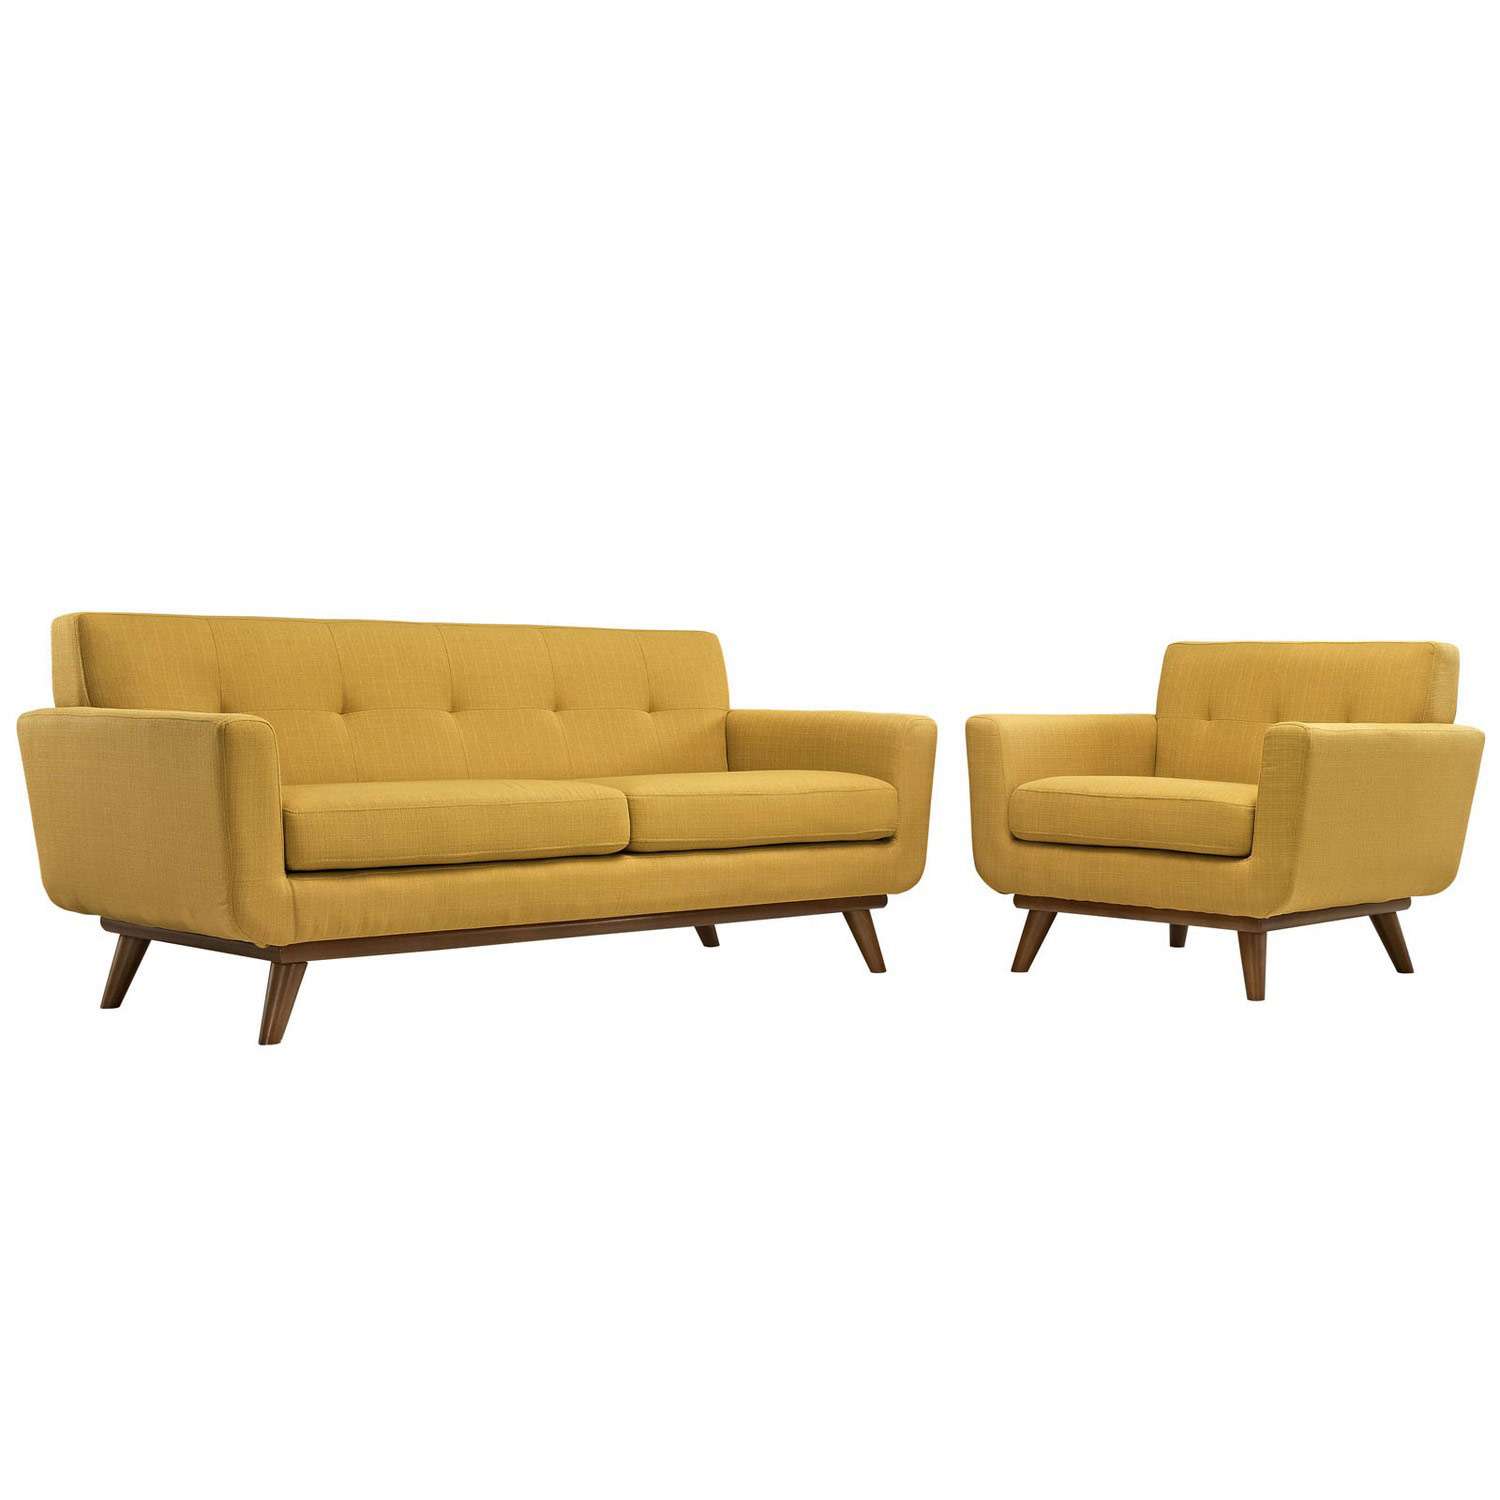 Modway Engage Armchair and Loveseat Set of 2 - Citrus